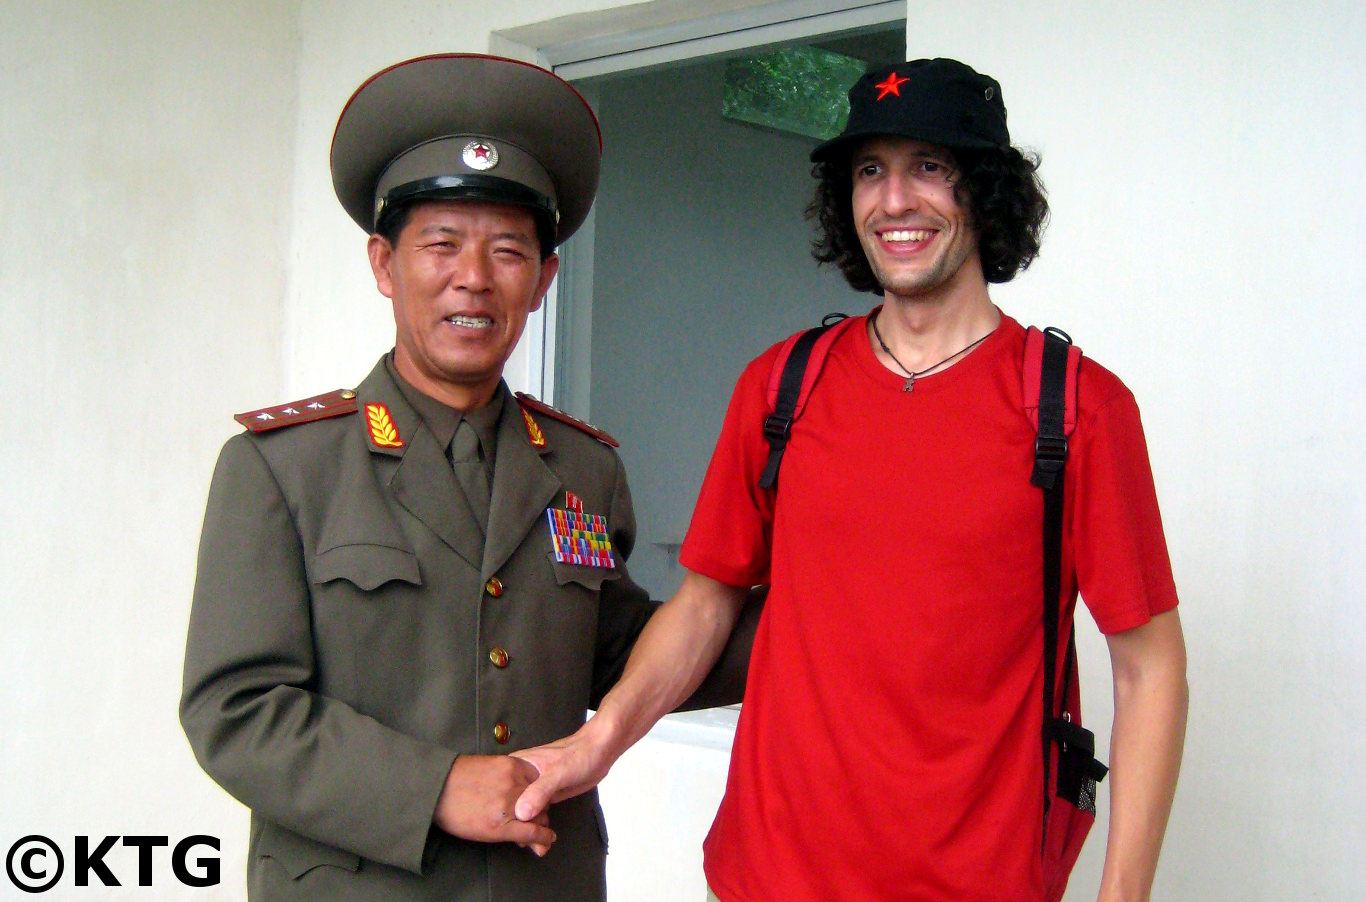 KTG traveller takes a picture with a North Koean Colonel. The (DPRK) North Korean military officer explains where South Korea have a concrete wall that strectches across the Korean peninsula